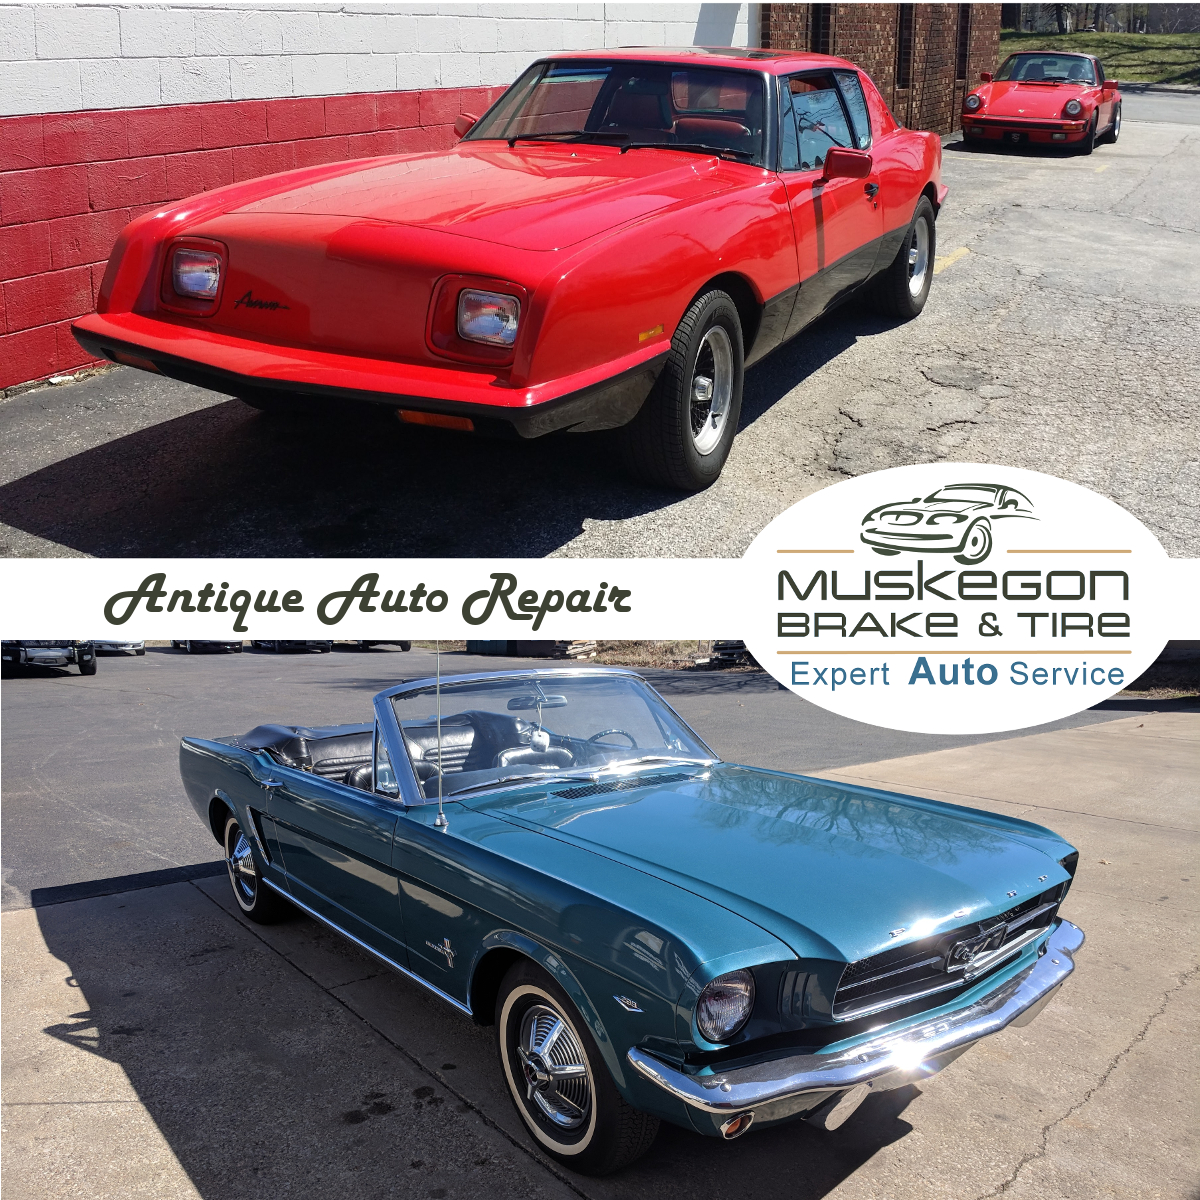 Antique Auto Repair and Maintenance at Muskegon Brake & Tire